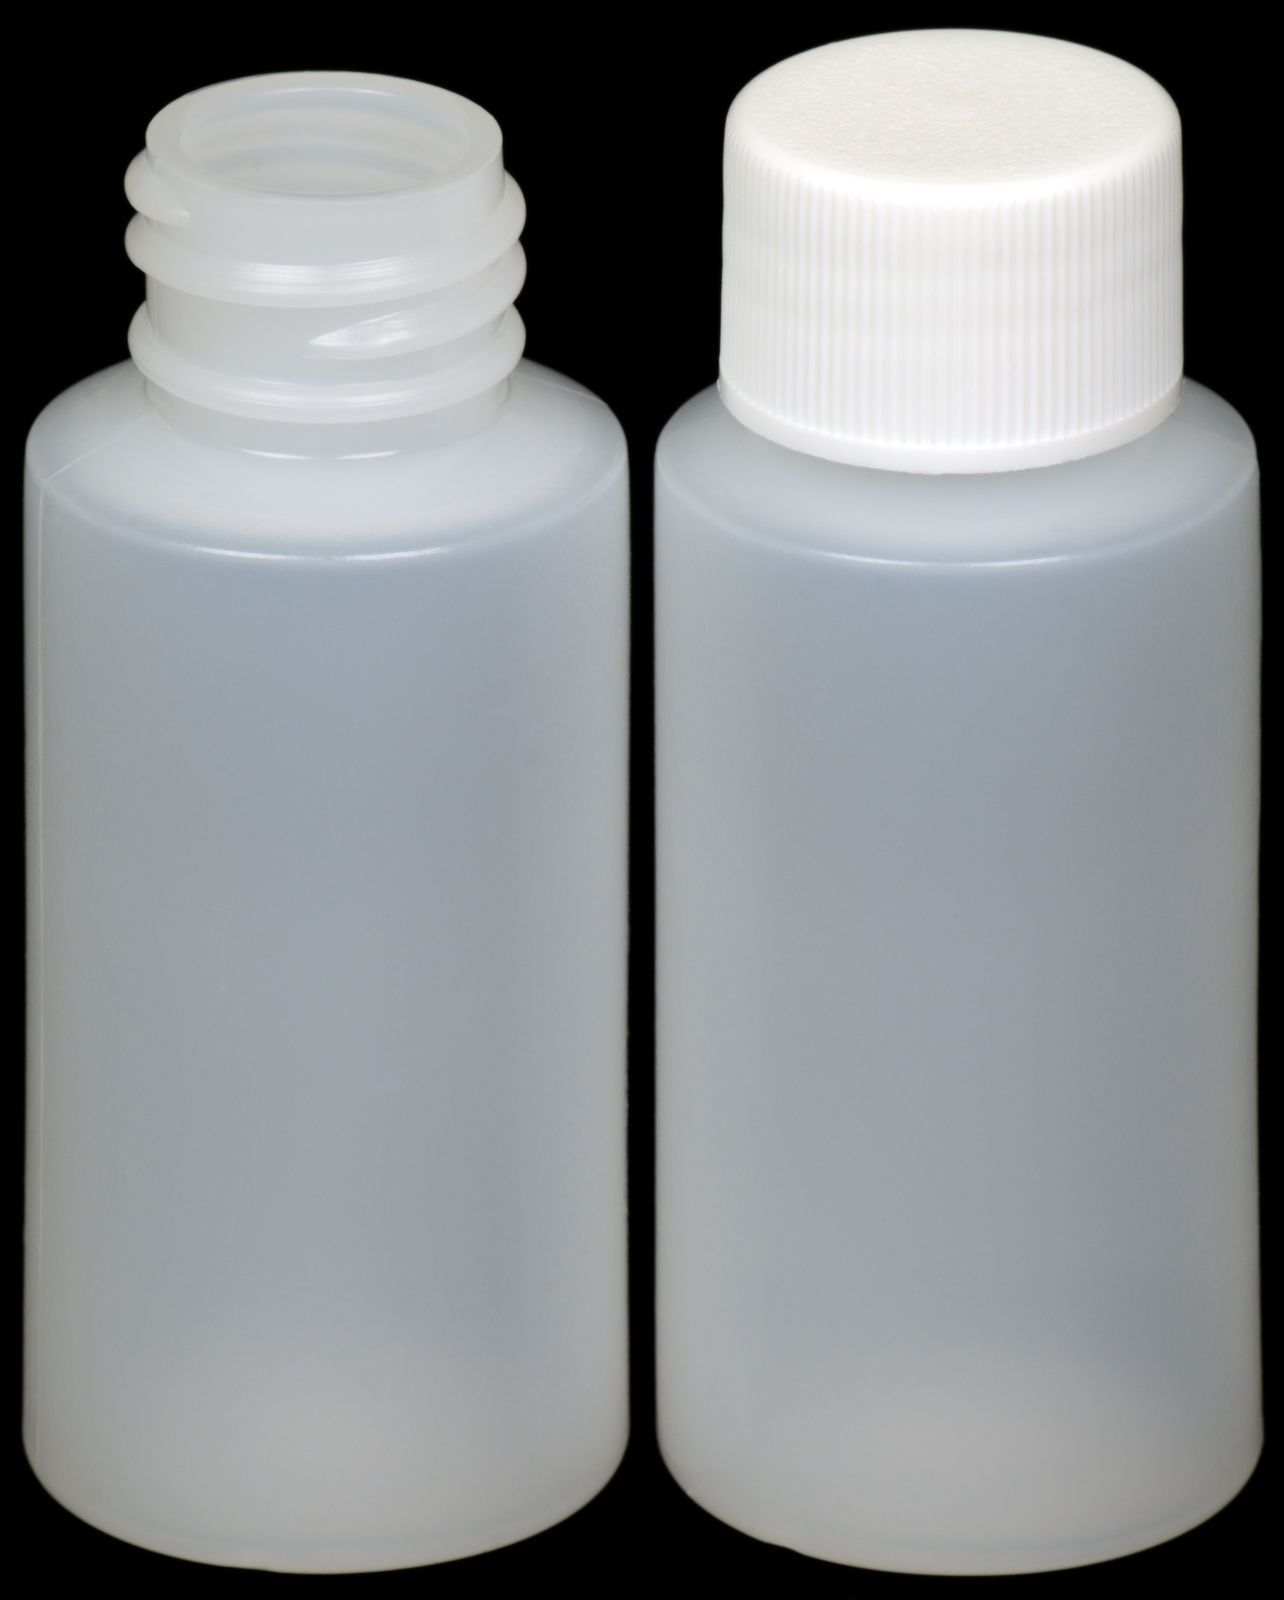 Organization And Storage 146396 Plastic Bottle Hdpe W White Lid 1 Oz 45 Pack New Buy It Now Only 12 59 Plastic Bottles Bottle Empty Plastic Bottles